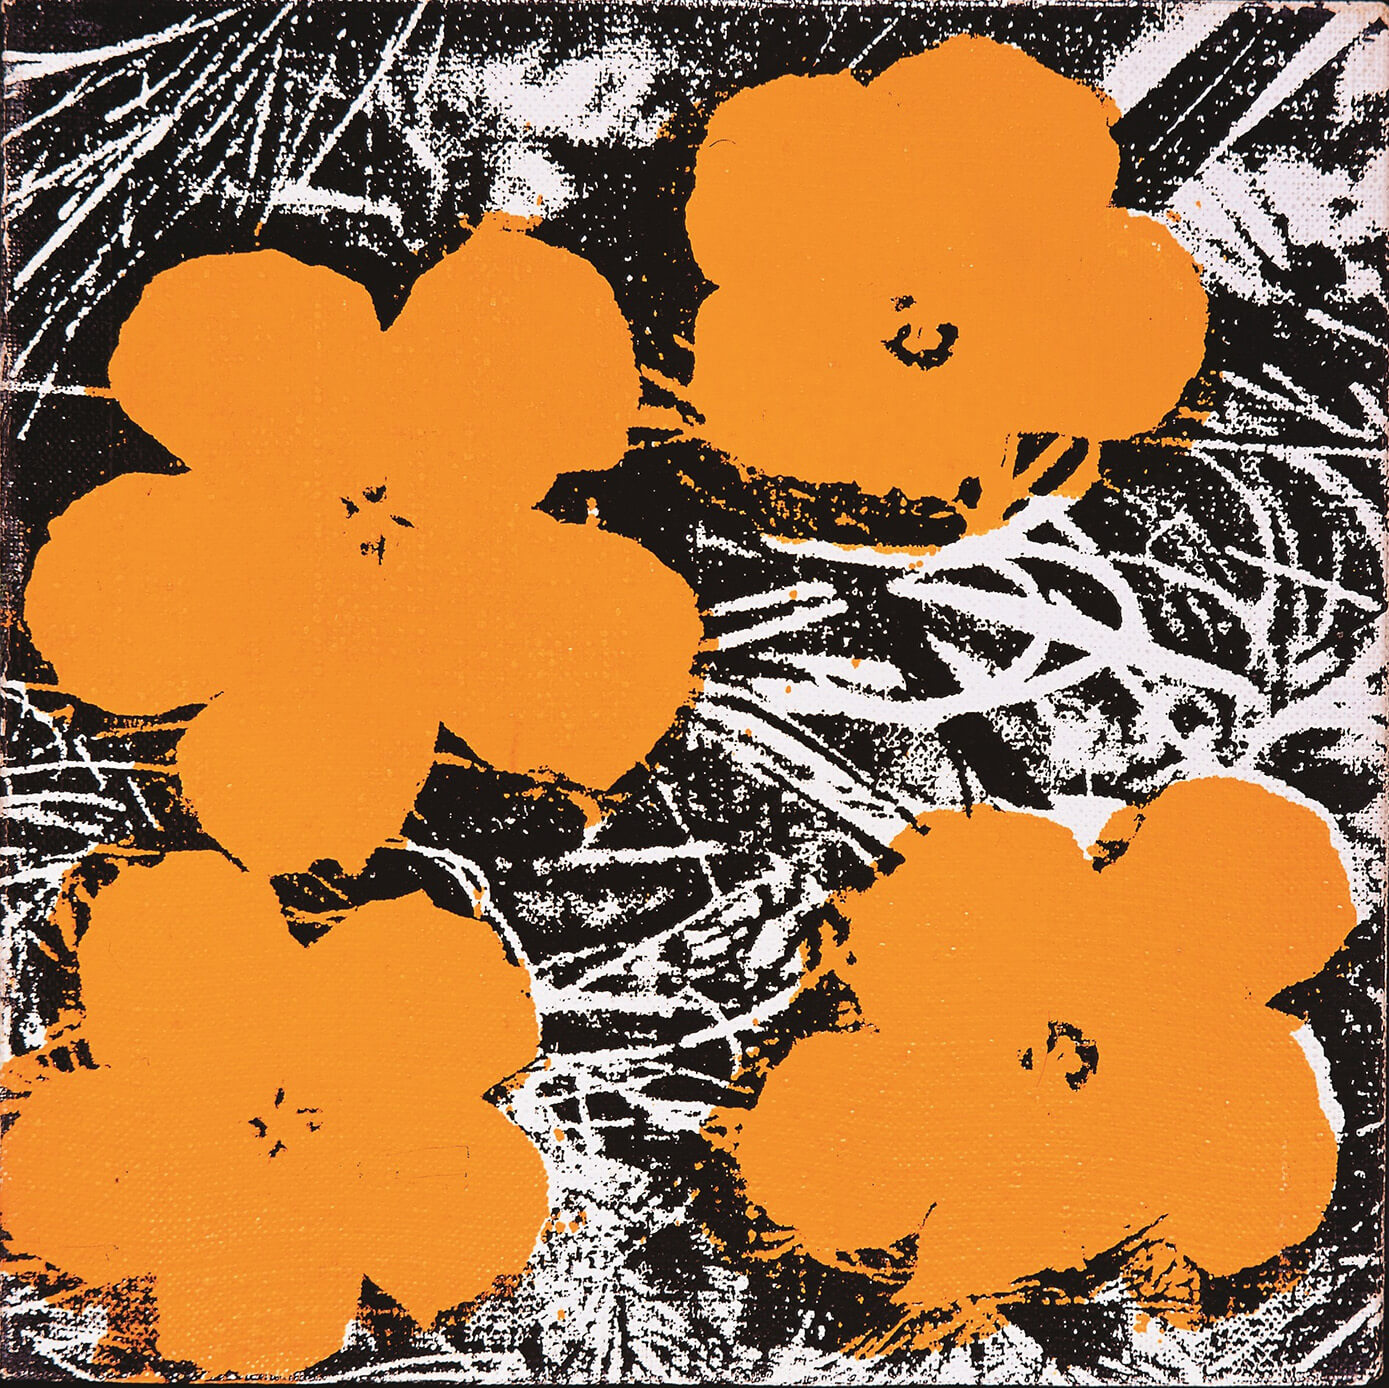 Andy Warhol (1928-1987), Flowers, 1965. © The Andy Warhol Foundation for the Visual Arts, Inc. / ADAGP, Paris 2015.